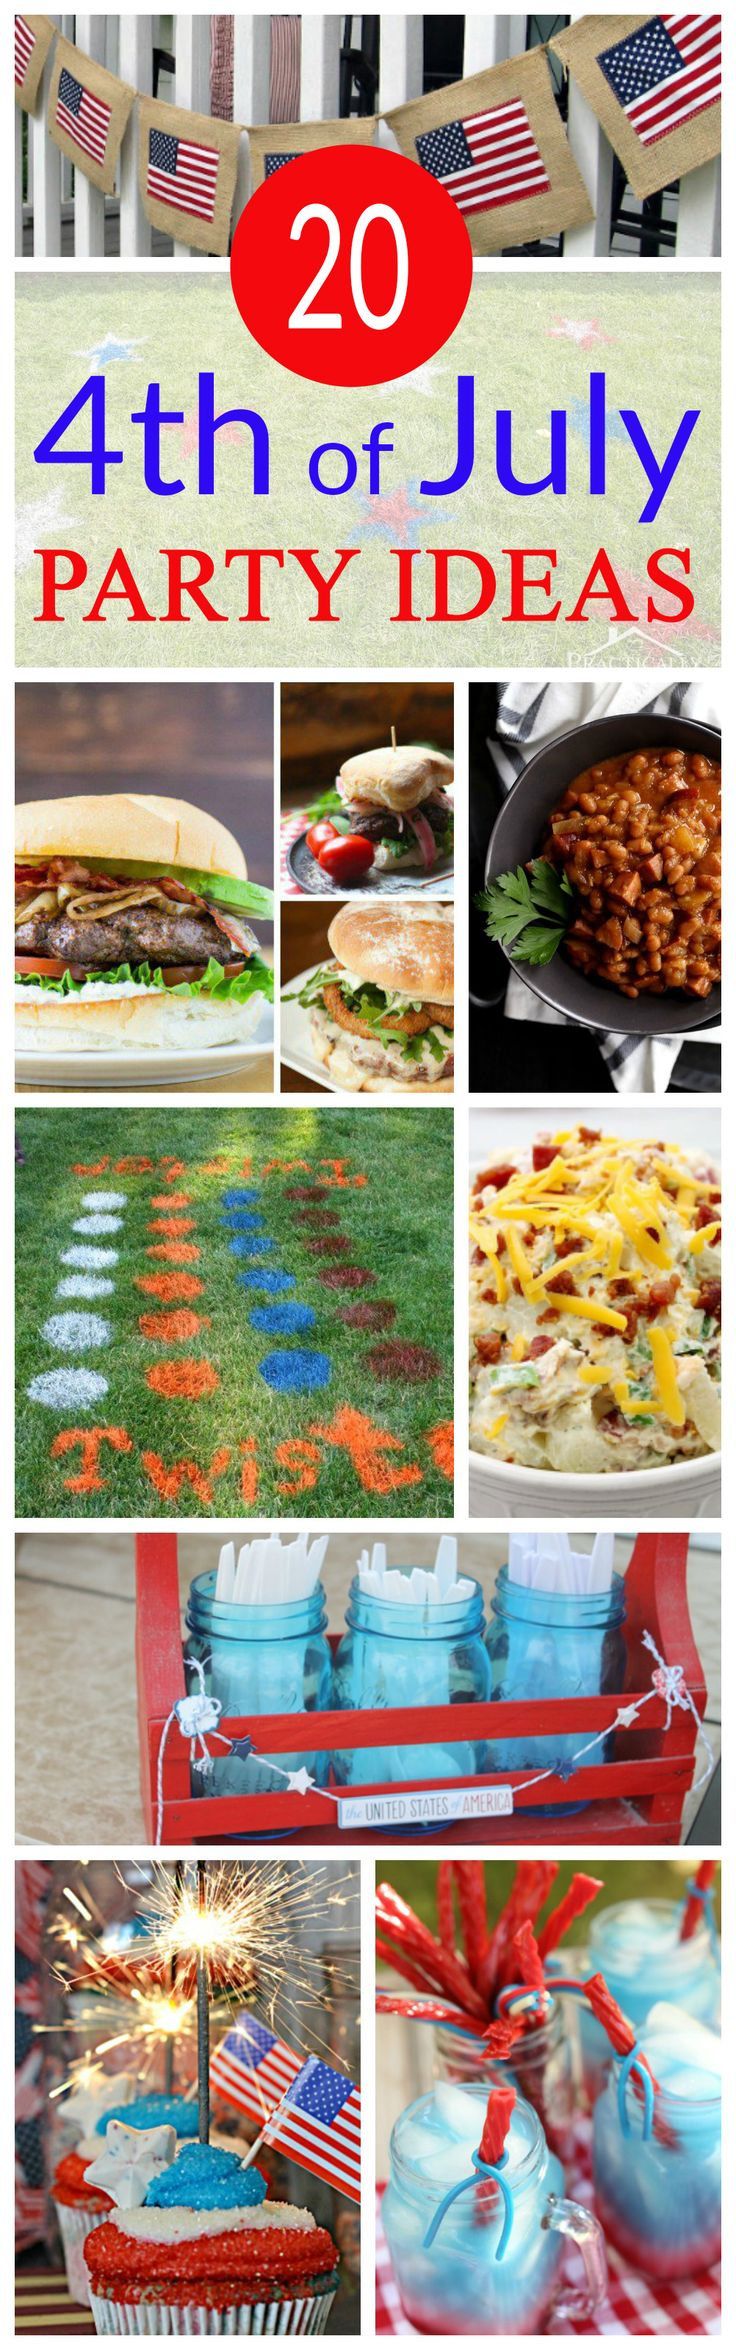 Hosting a 4th of July party can be overwhelming. Never fear, we've got you covered with Awesome Fourth of July Party Ideas. From the moment your guests pull up to your house until the time you wish them farewell, this list of games, decorations and (most importantly) food will make party planning a breeze!